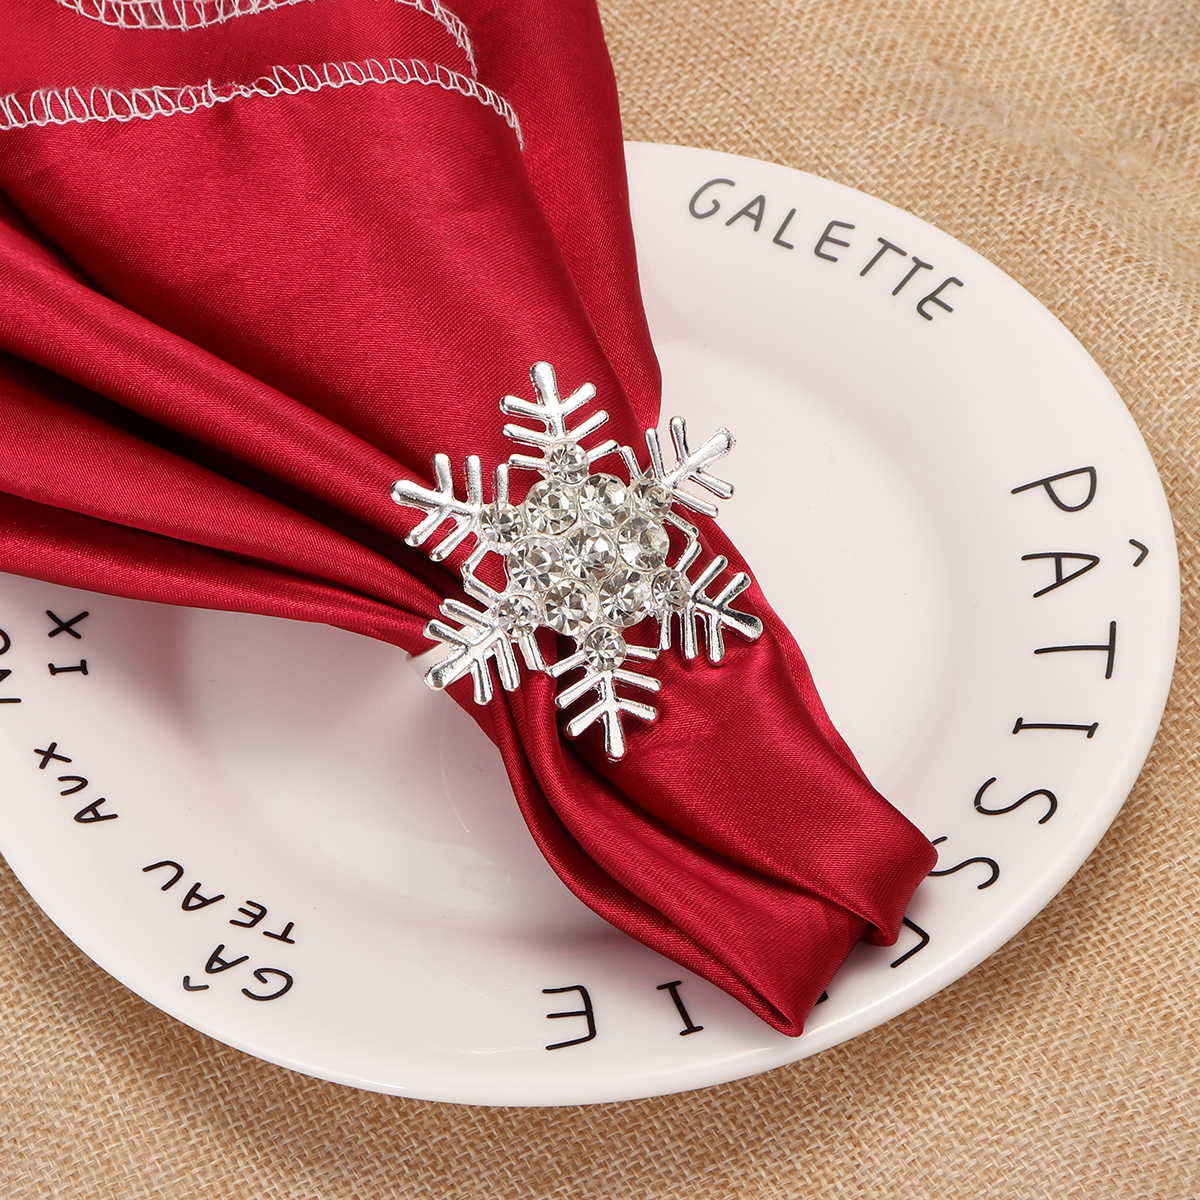 4pcs/set Sparkling Snowflake Napkin Buckles Rings Party Table Napkin Rings Holders Wedding Party Tableware Decoration Pendant